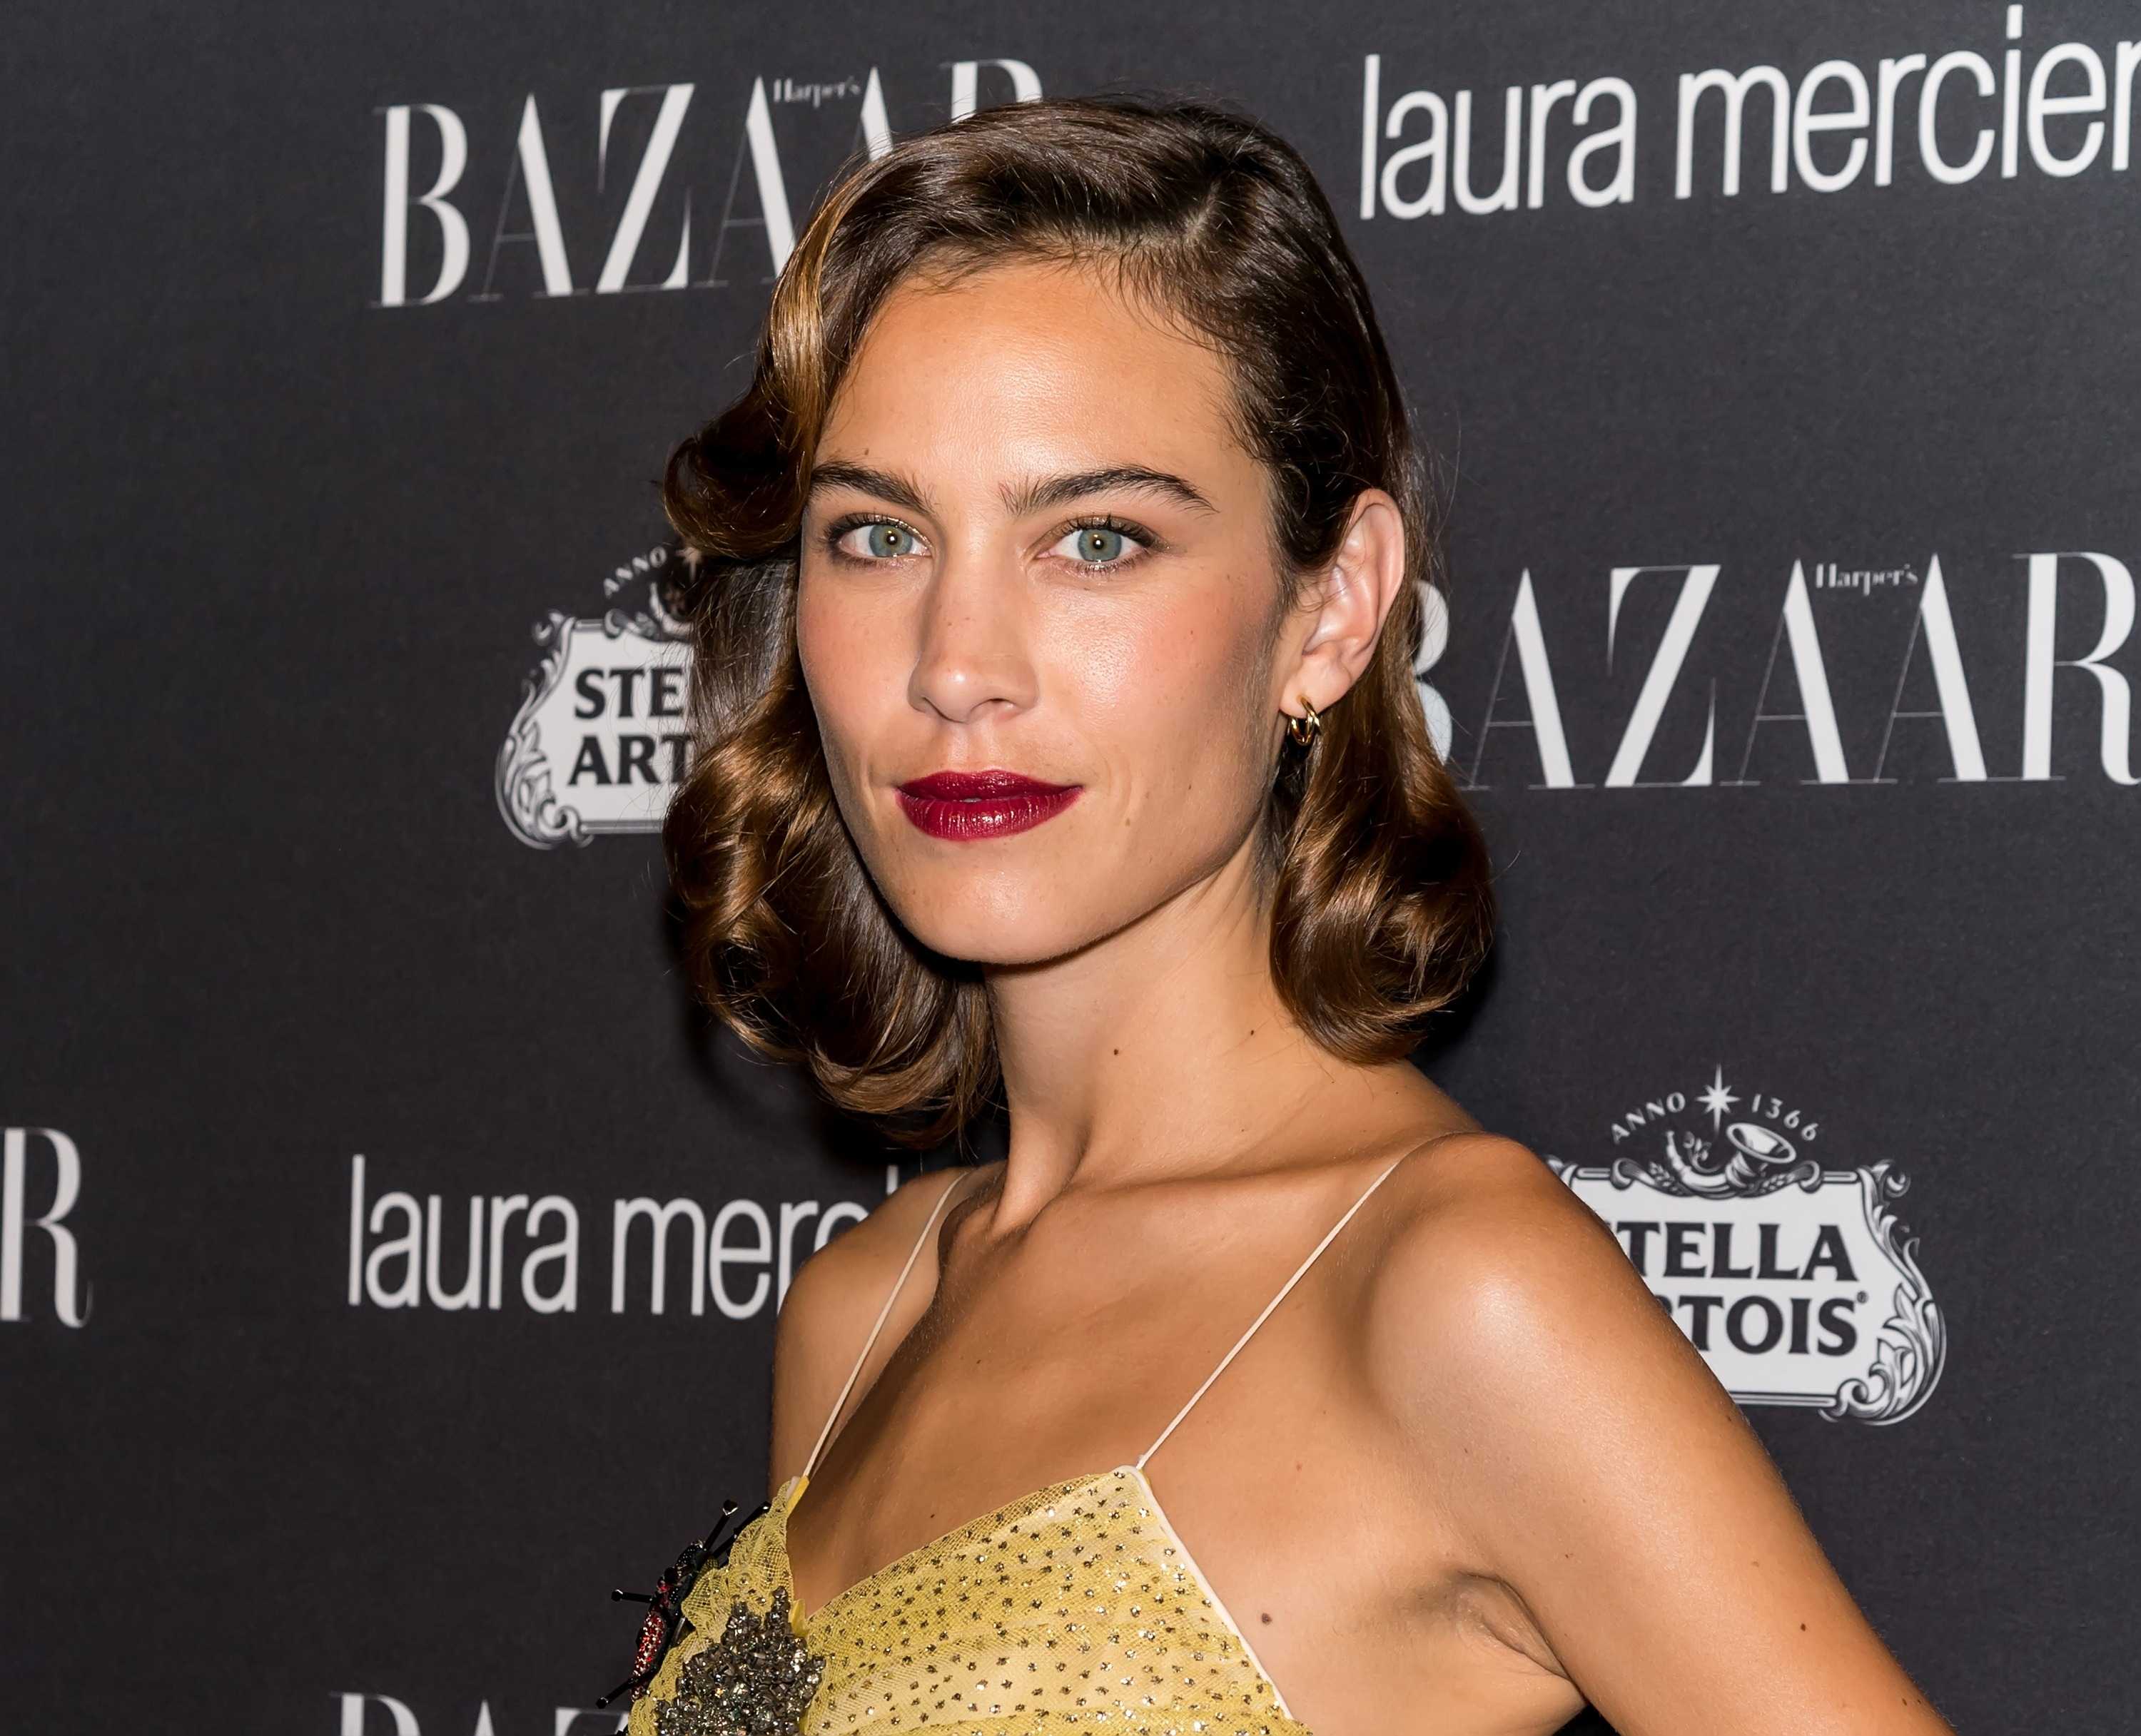 Alexa Chung's NYFW outfit is the perfect from-summer-to-fall look